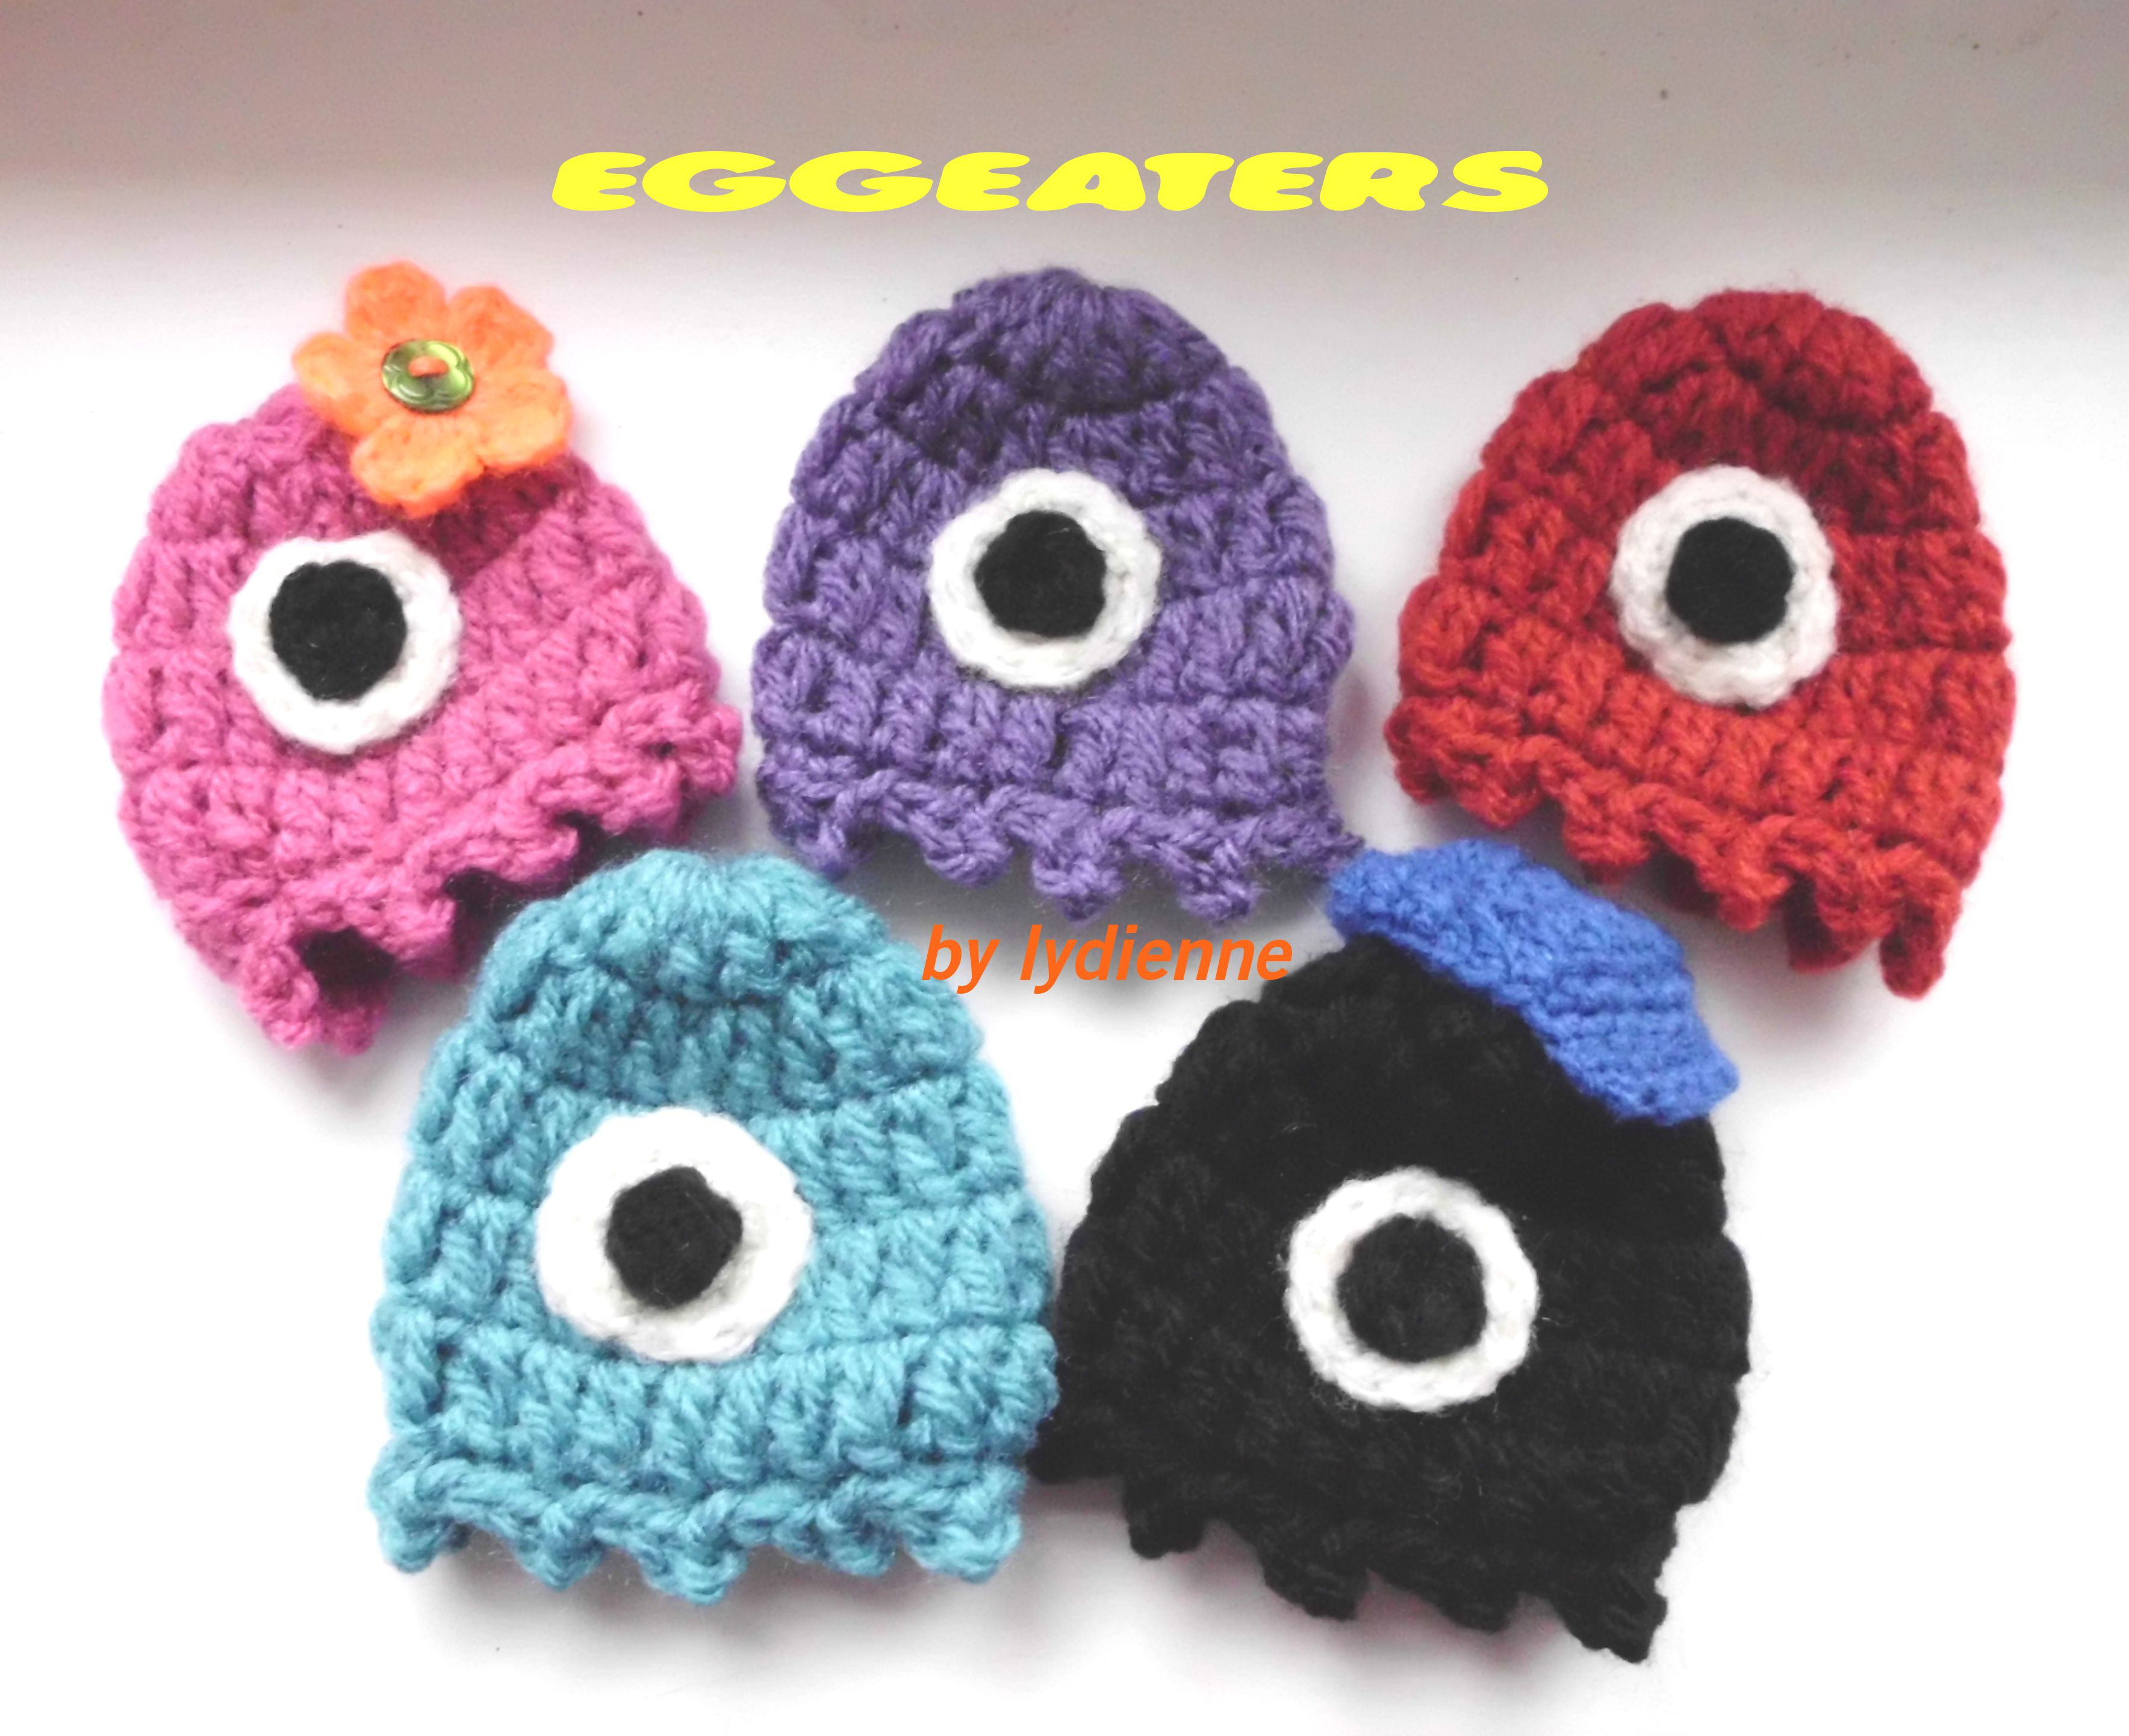 Easter Egg Cozies You Can Crochet